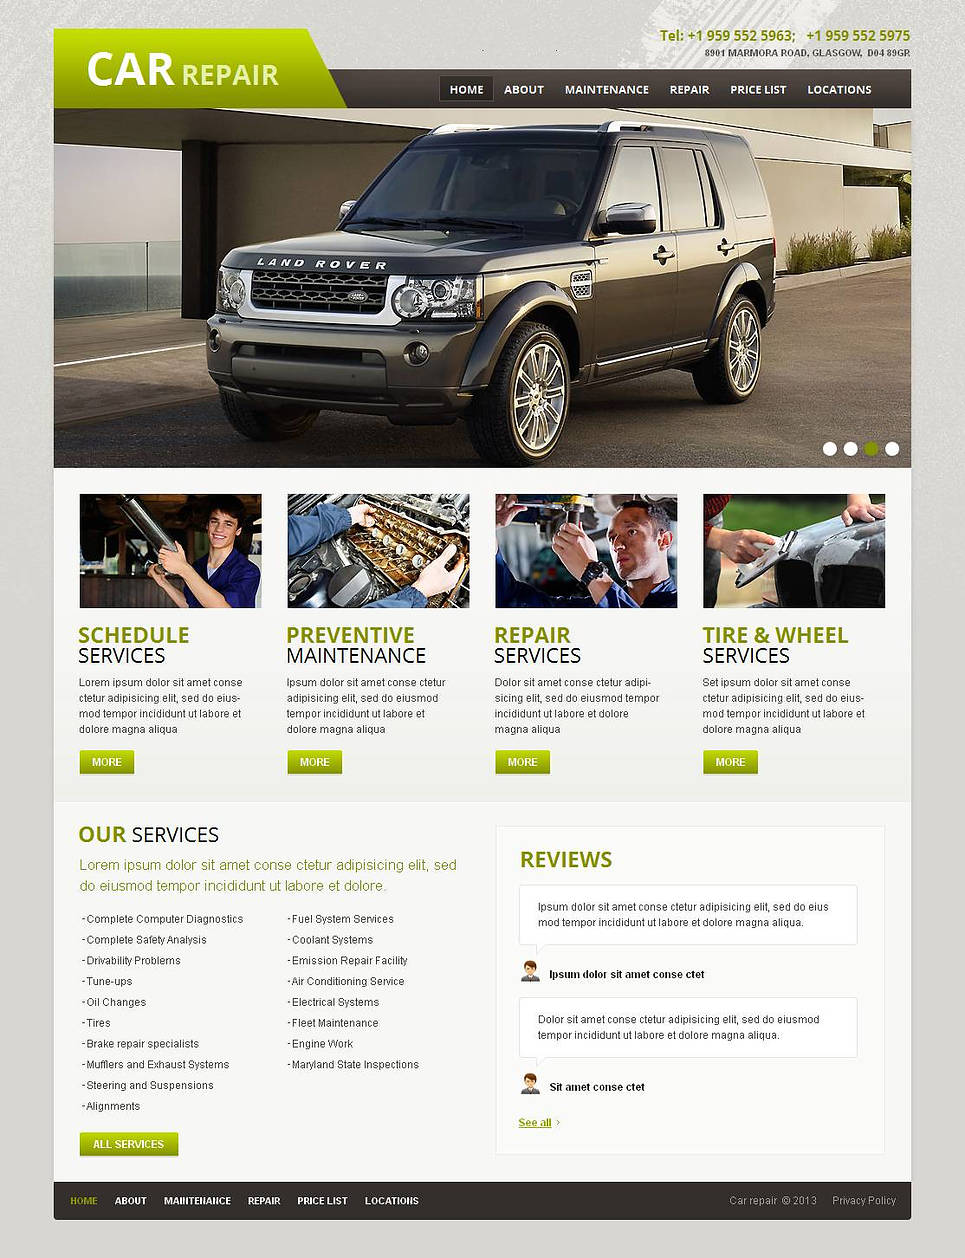 Car Repair Website Template for Lucky Businessmen - image